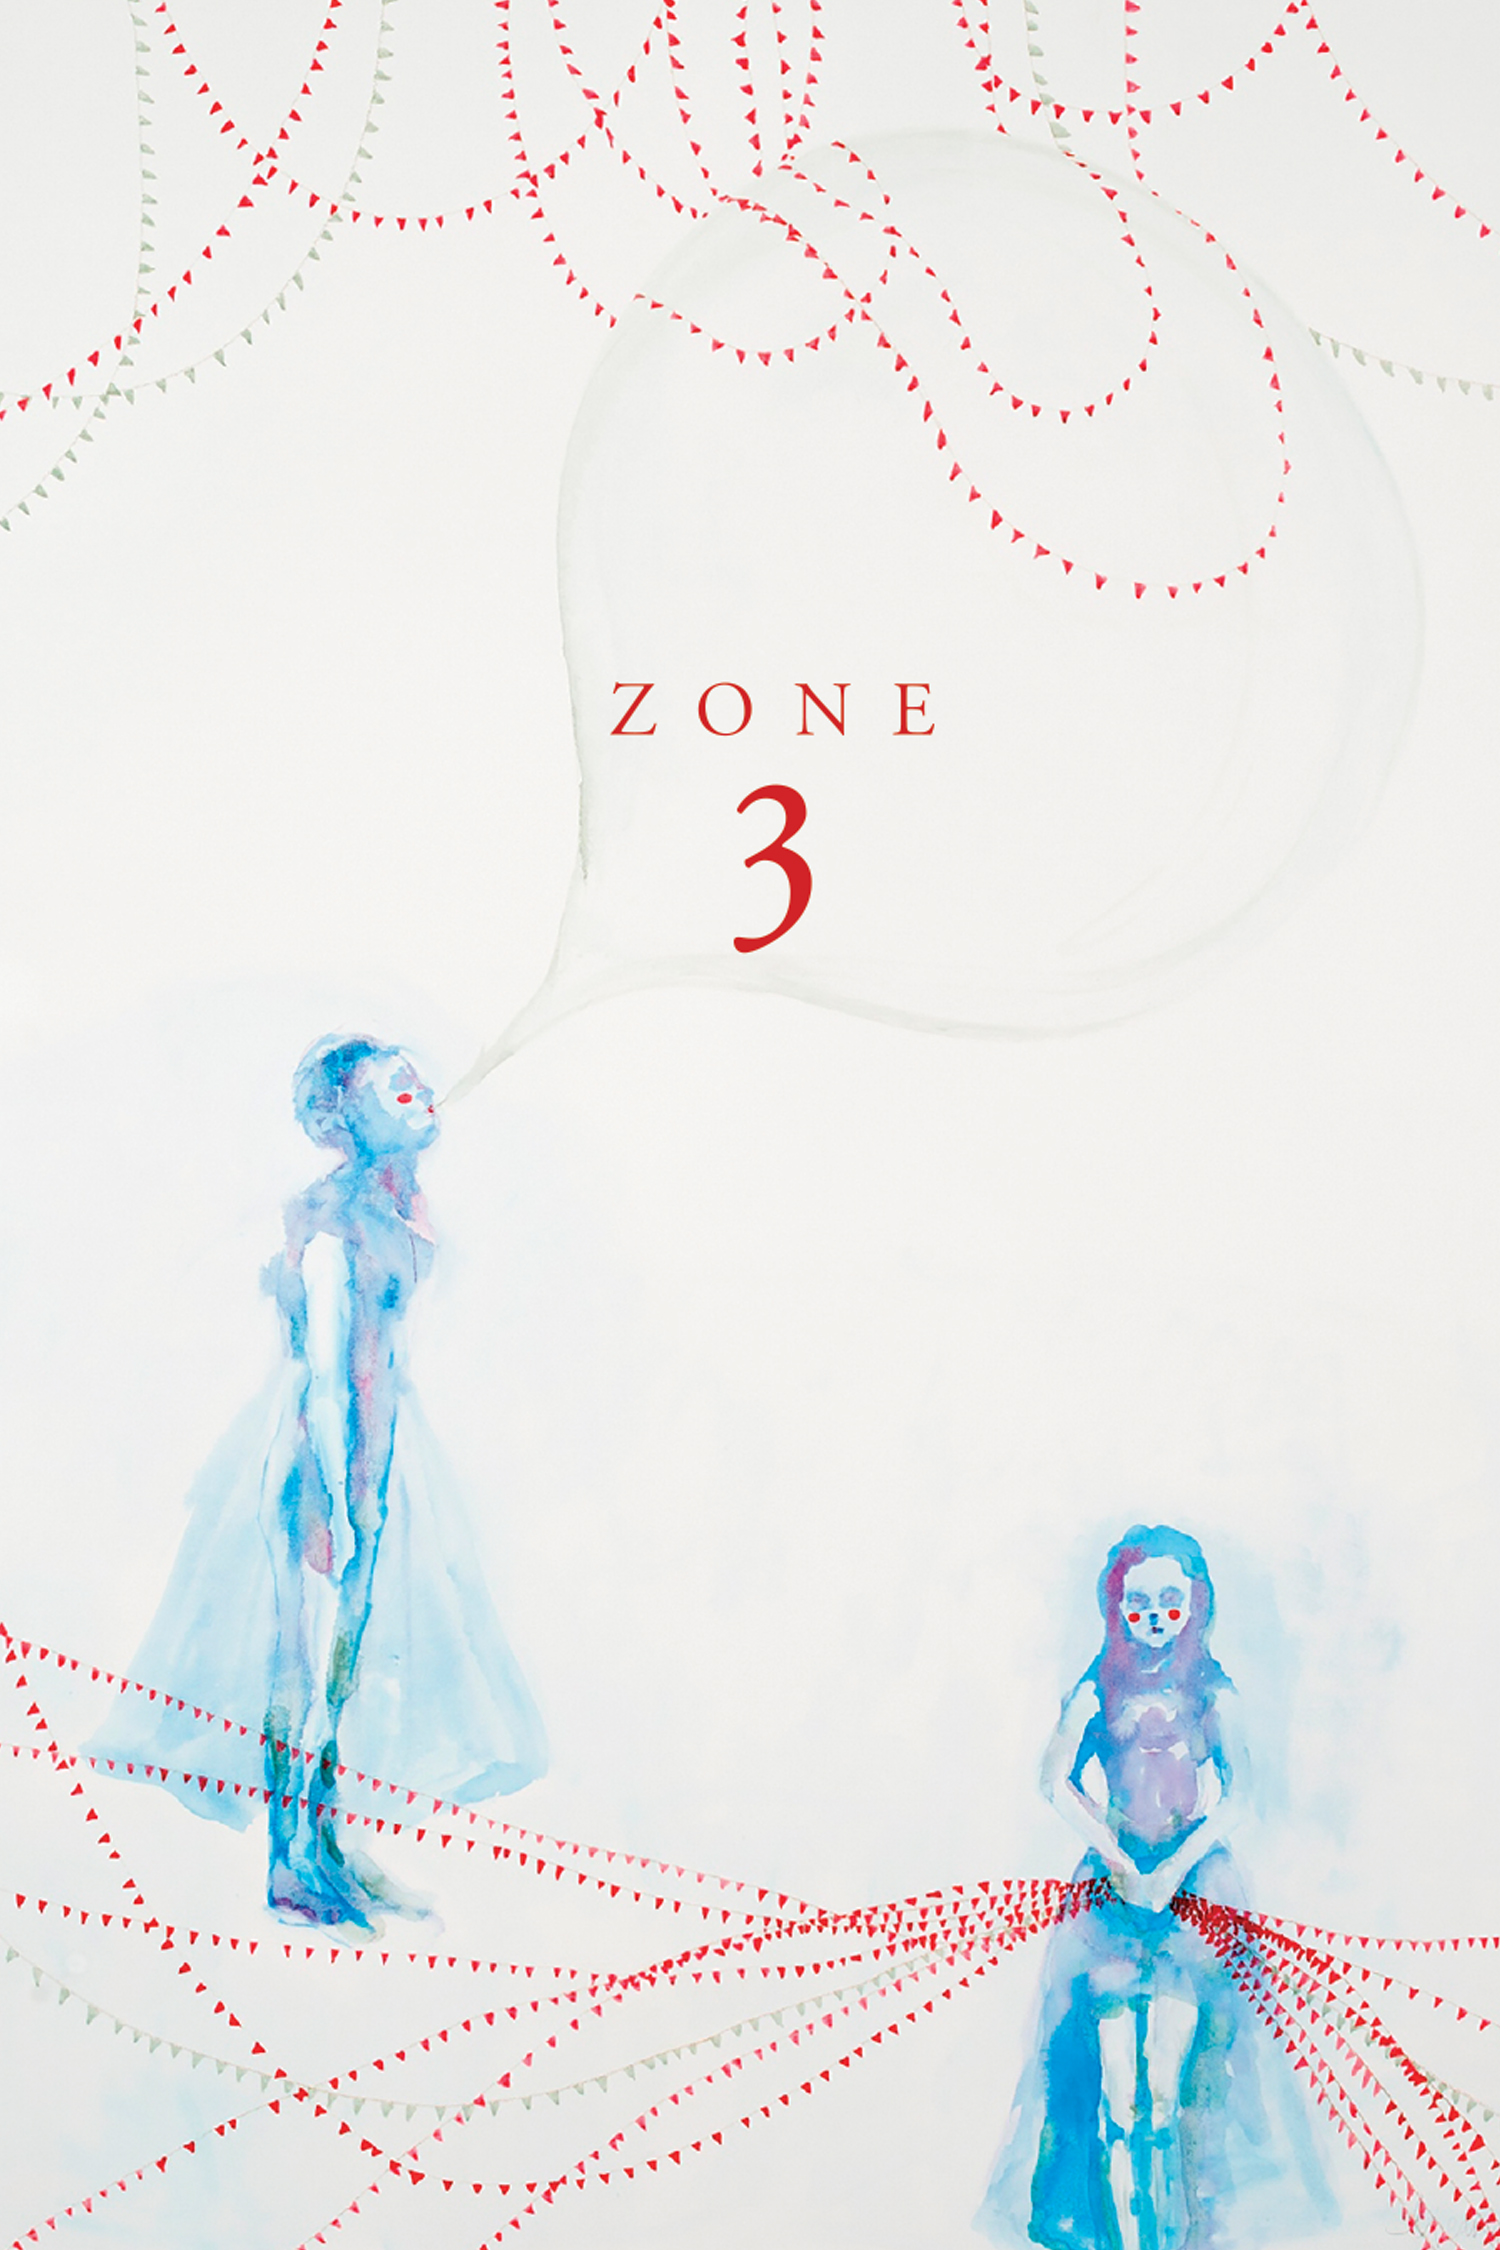 Zone 3 Vol. 31 No. 1 Spring 2016